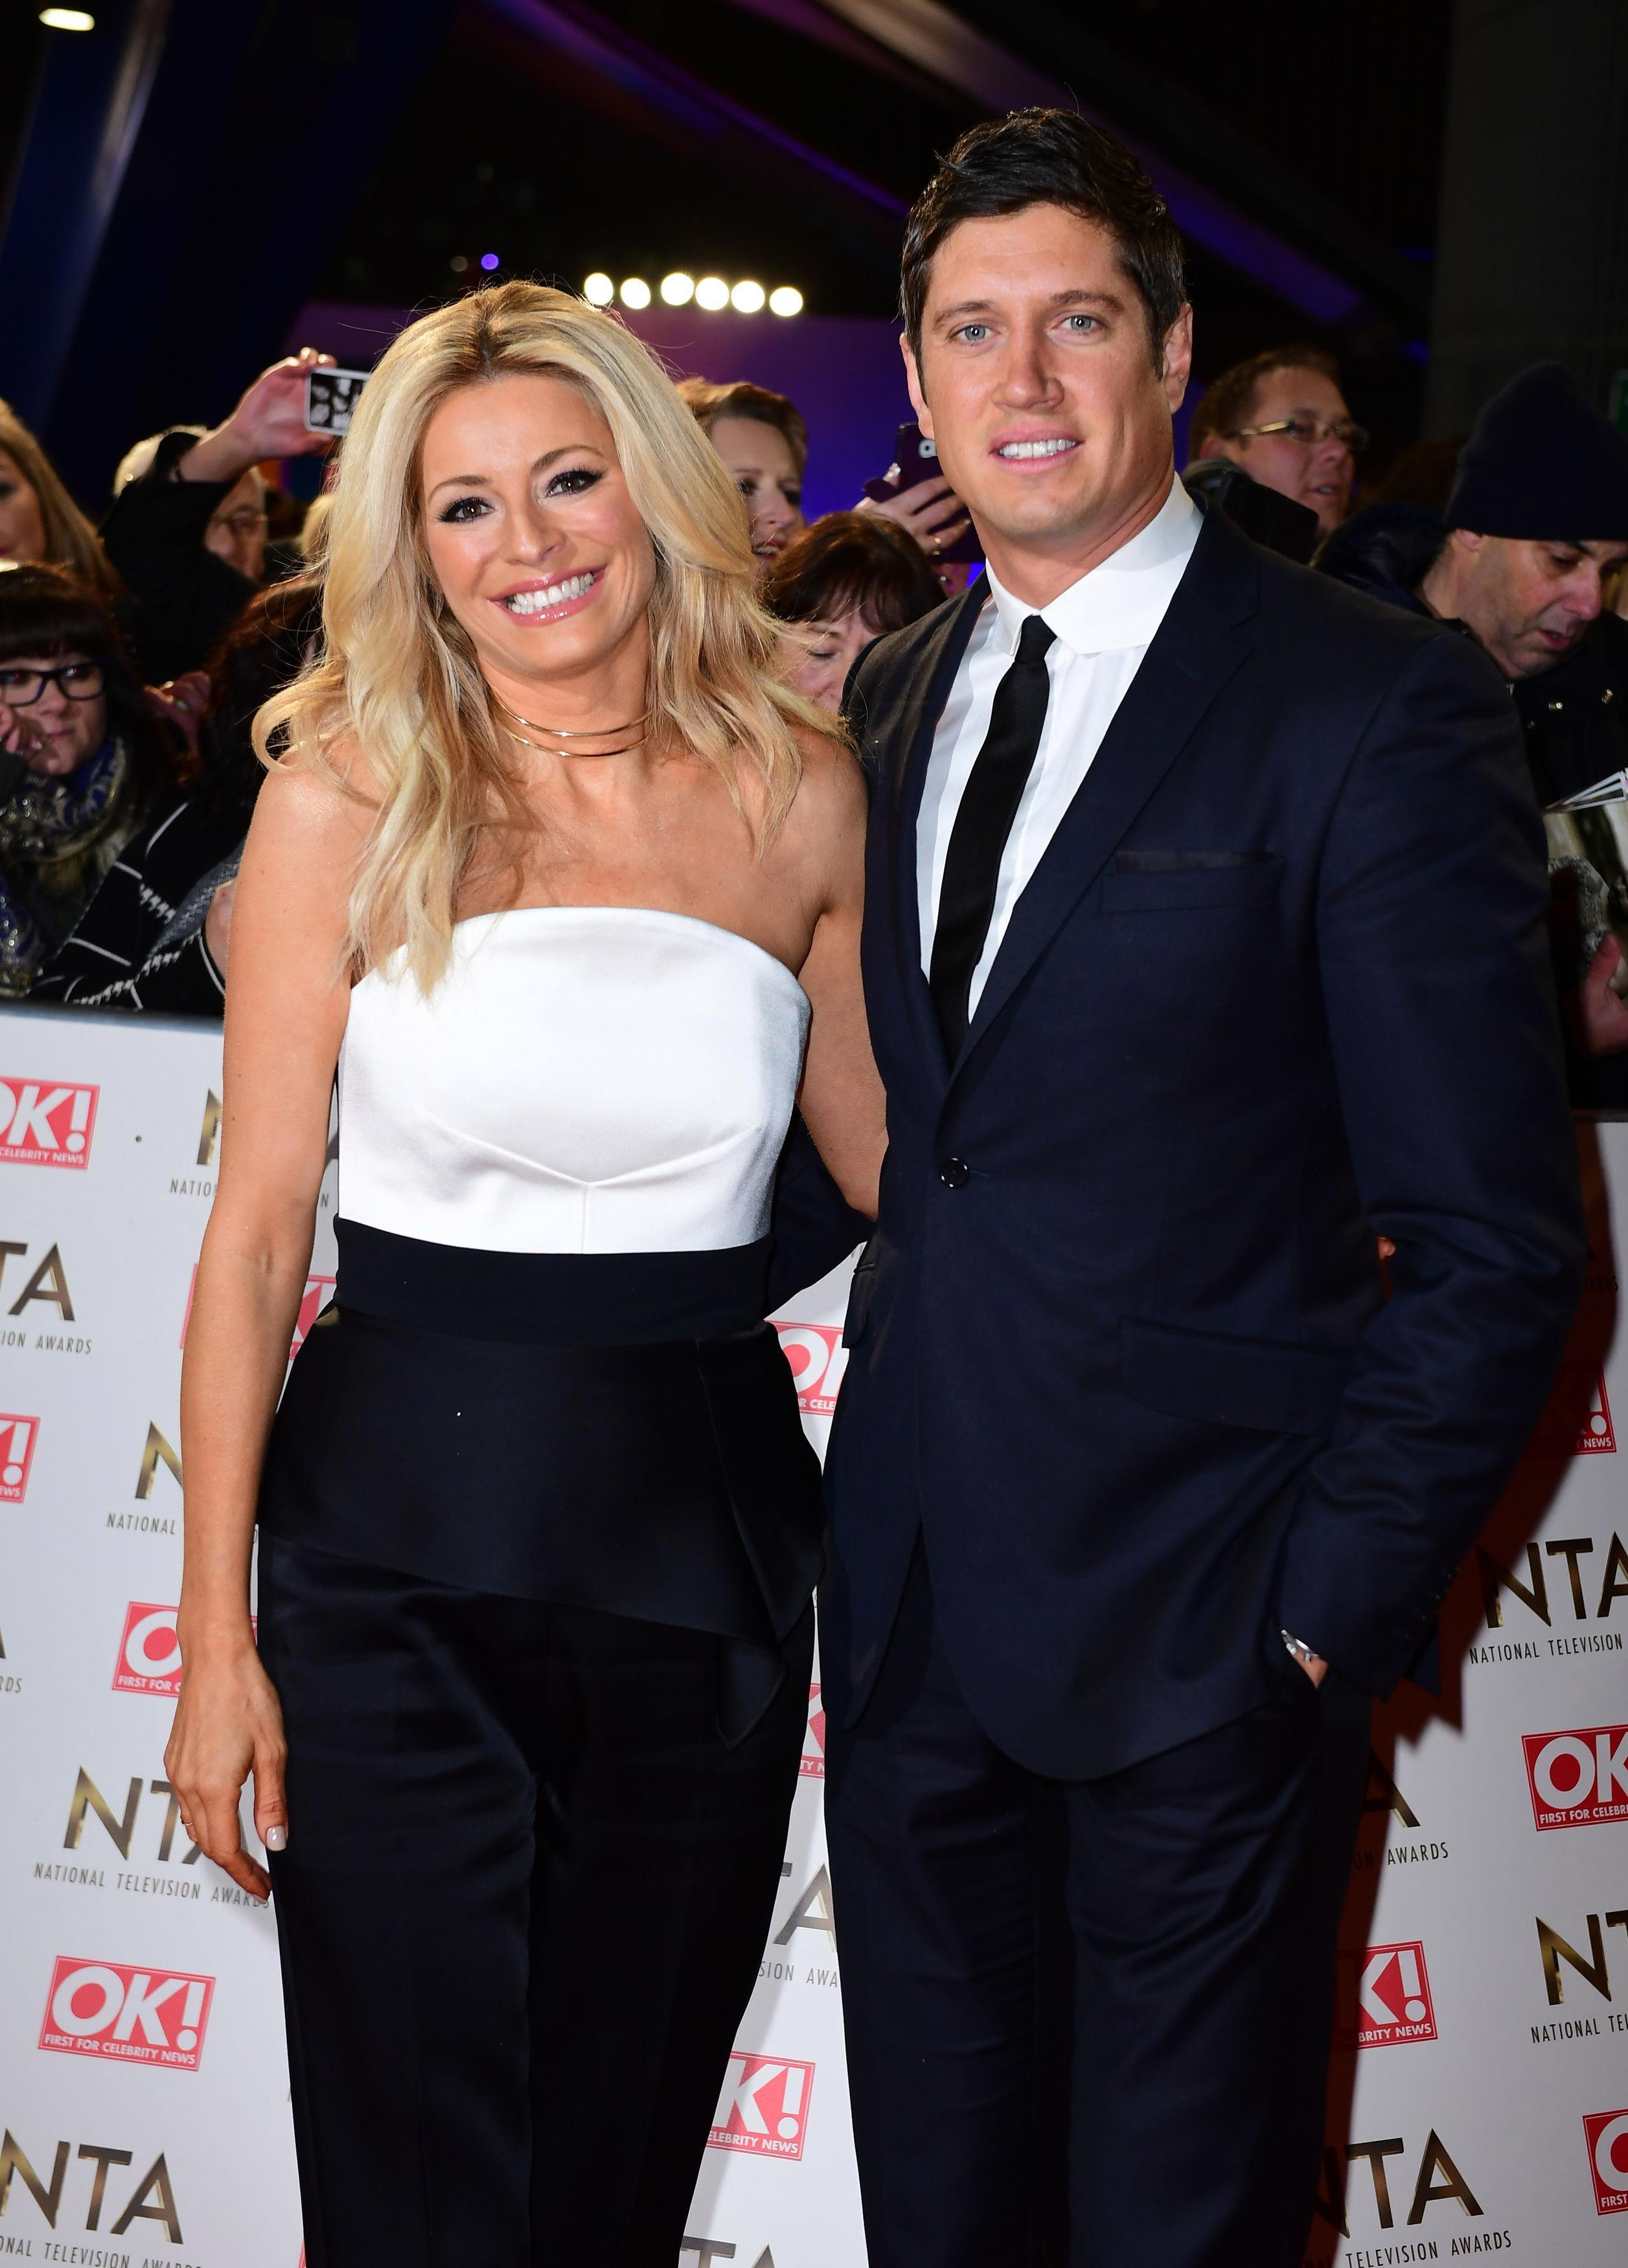 Tess Daly 'upset' after husband Vernon Kay is wrongly linked to Presidents Club dinner scandal